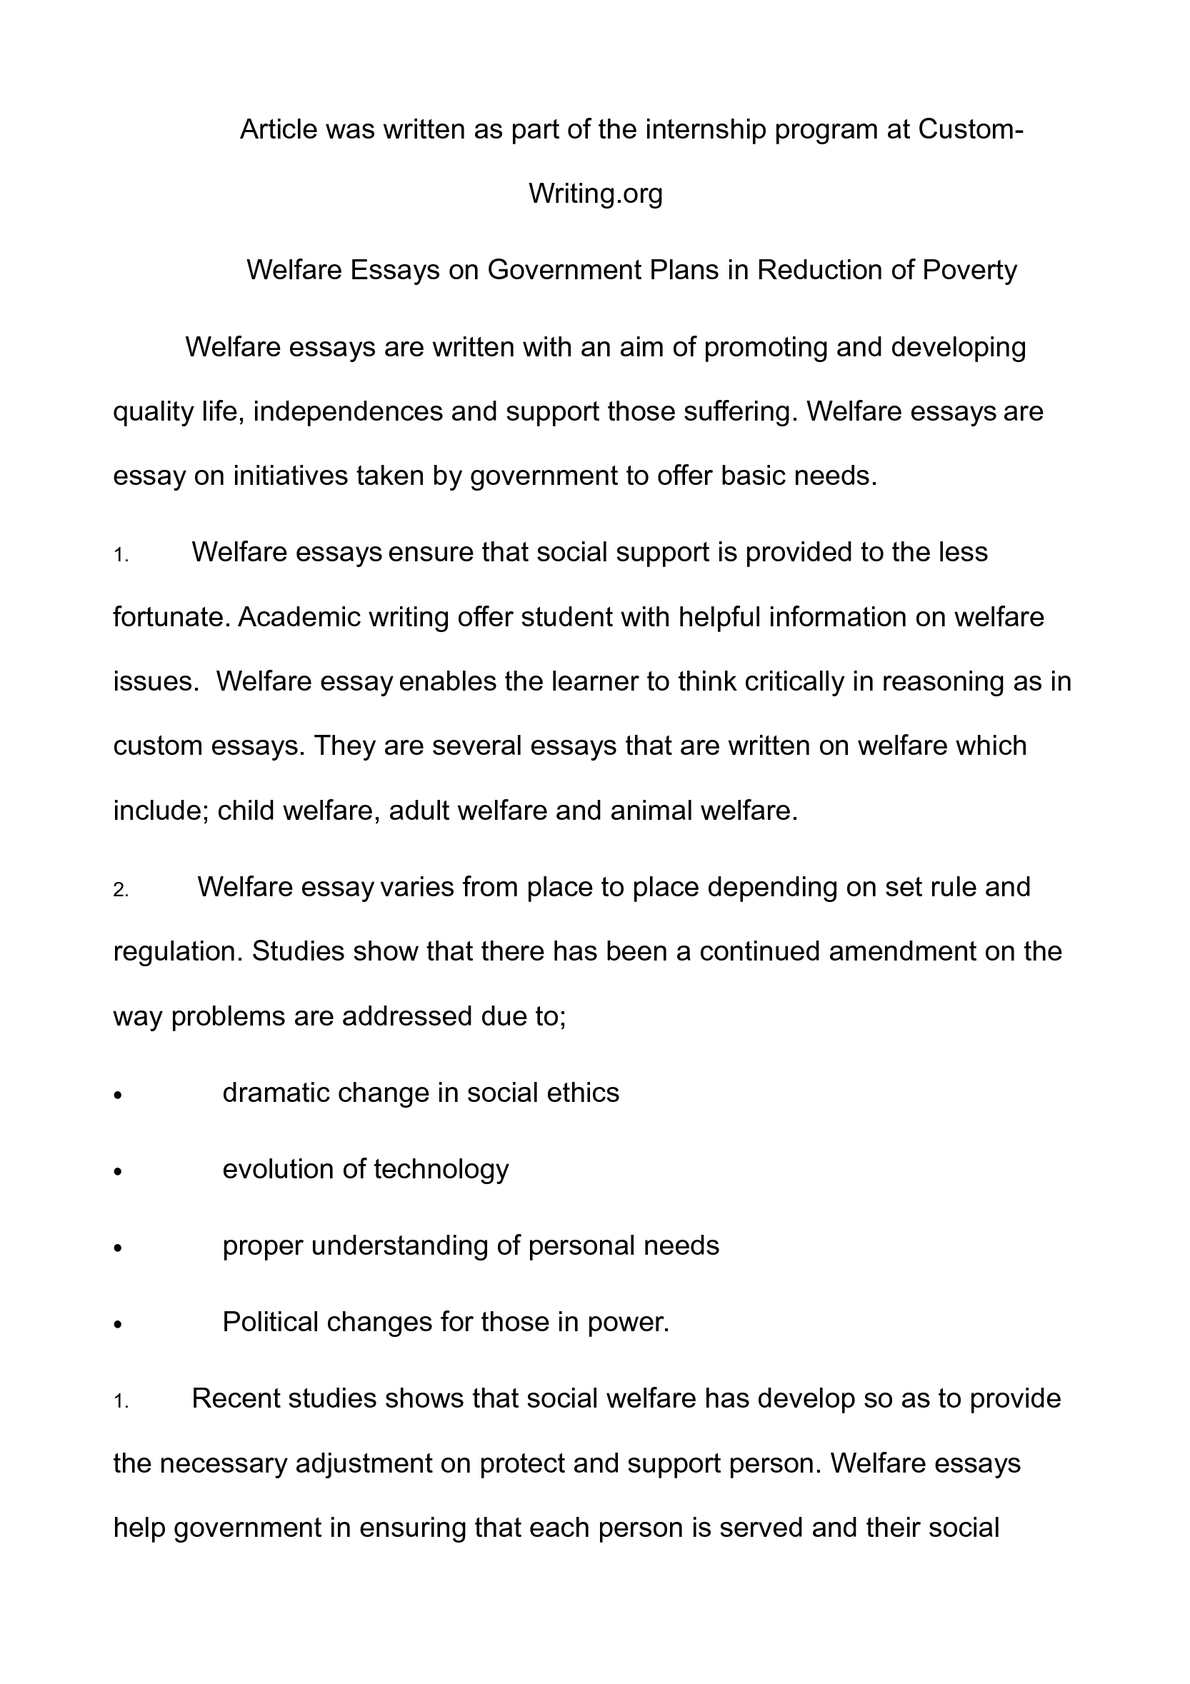 calamo   welfare essays on government plans in reduction of poverty